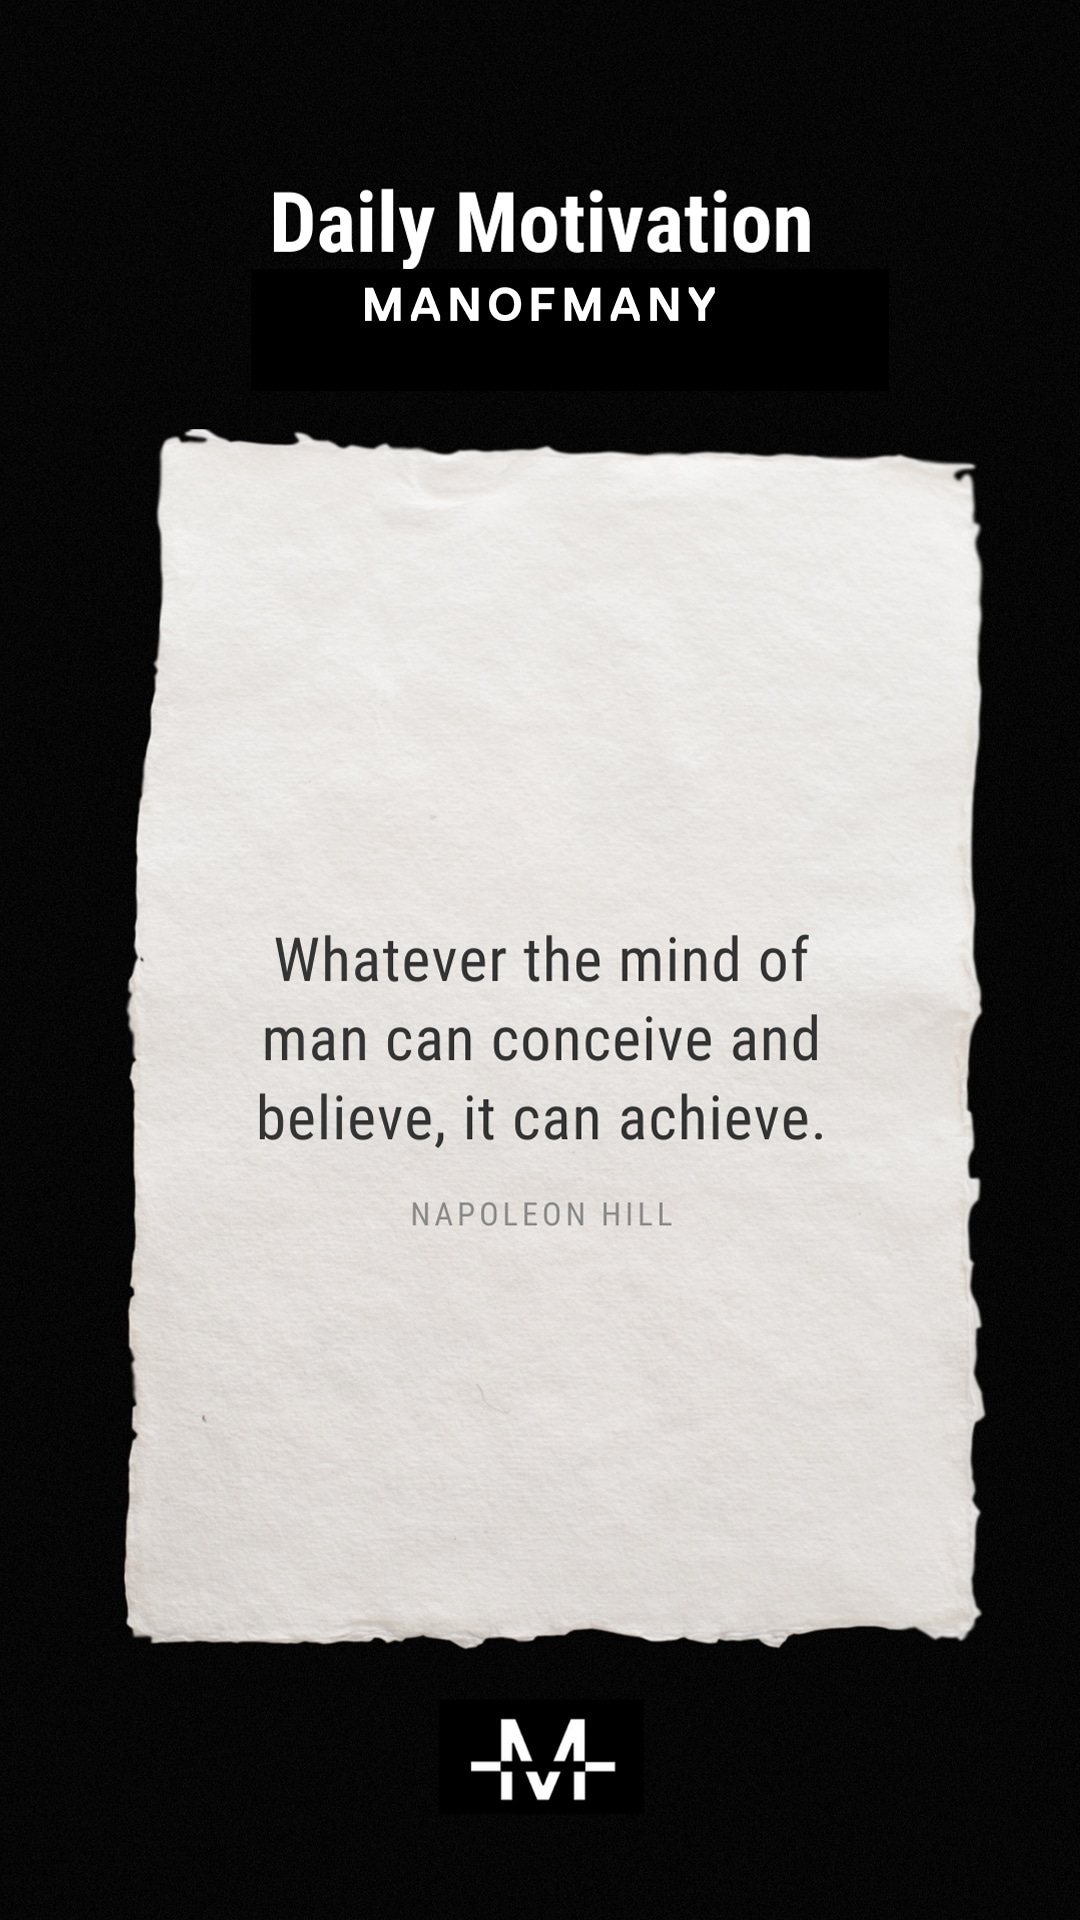 Whatever the mind of man can conceive and believe, it can achieve. –Napoleon Hill quote